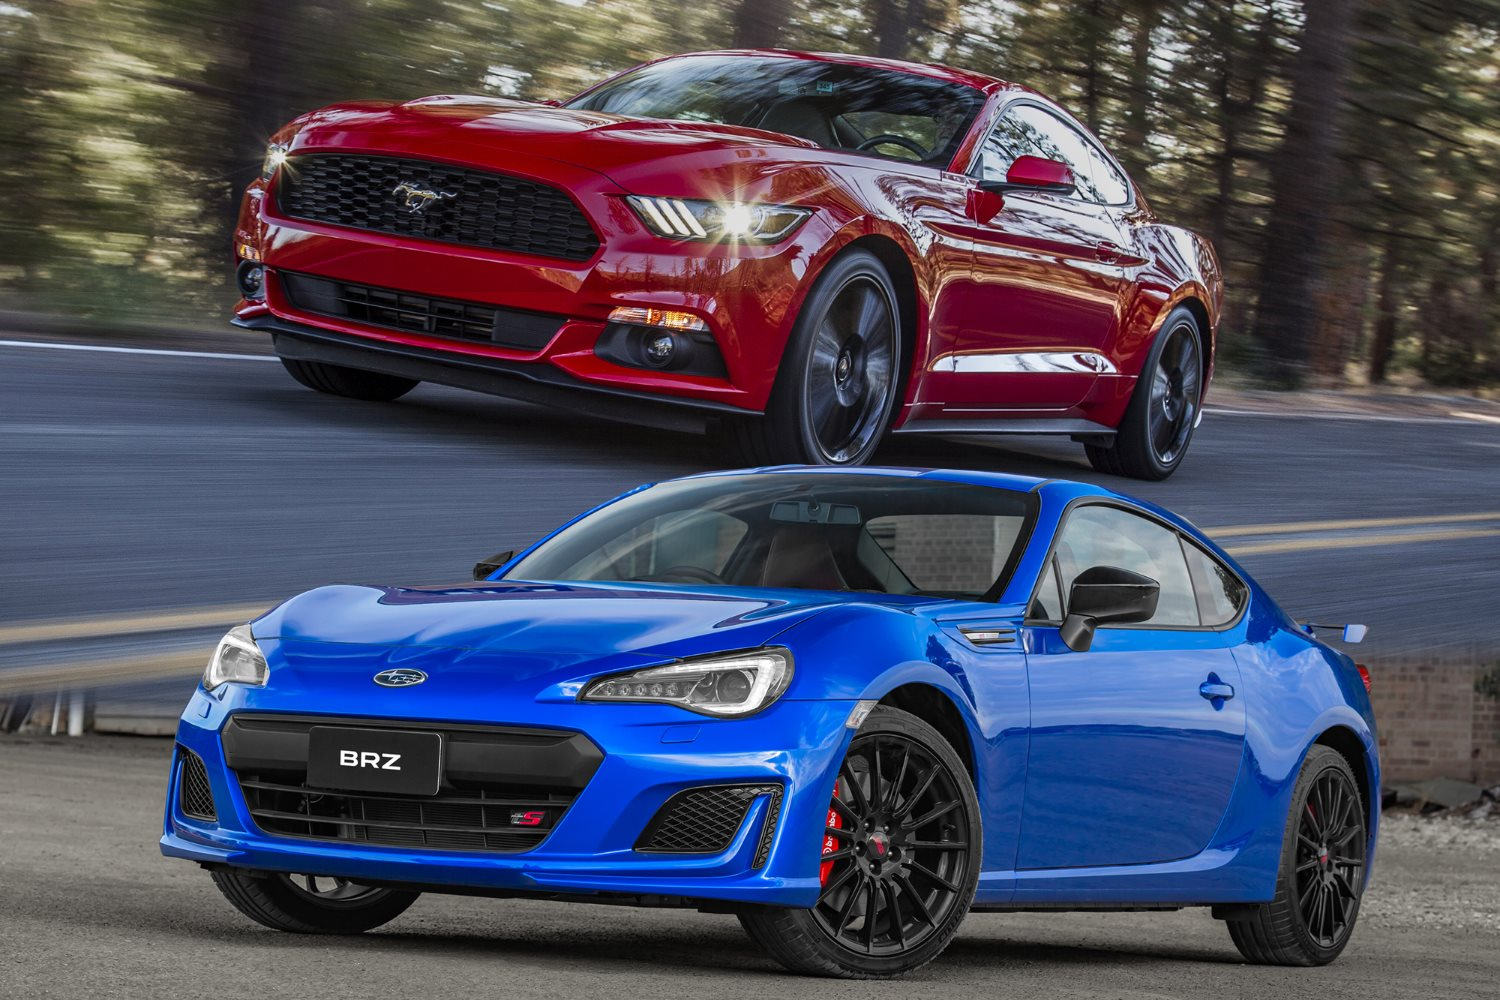 New vs Used: Buy the new Subaru BRZ tS or get a used Ford